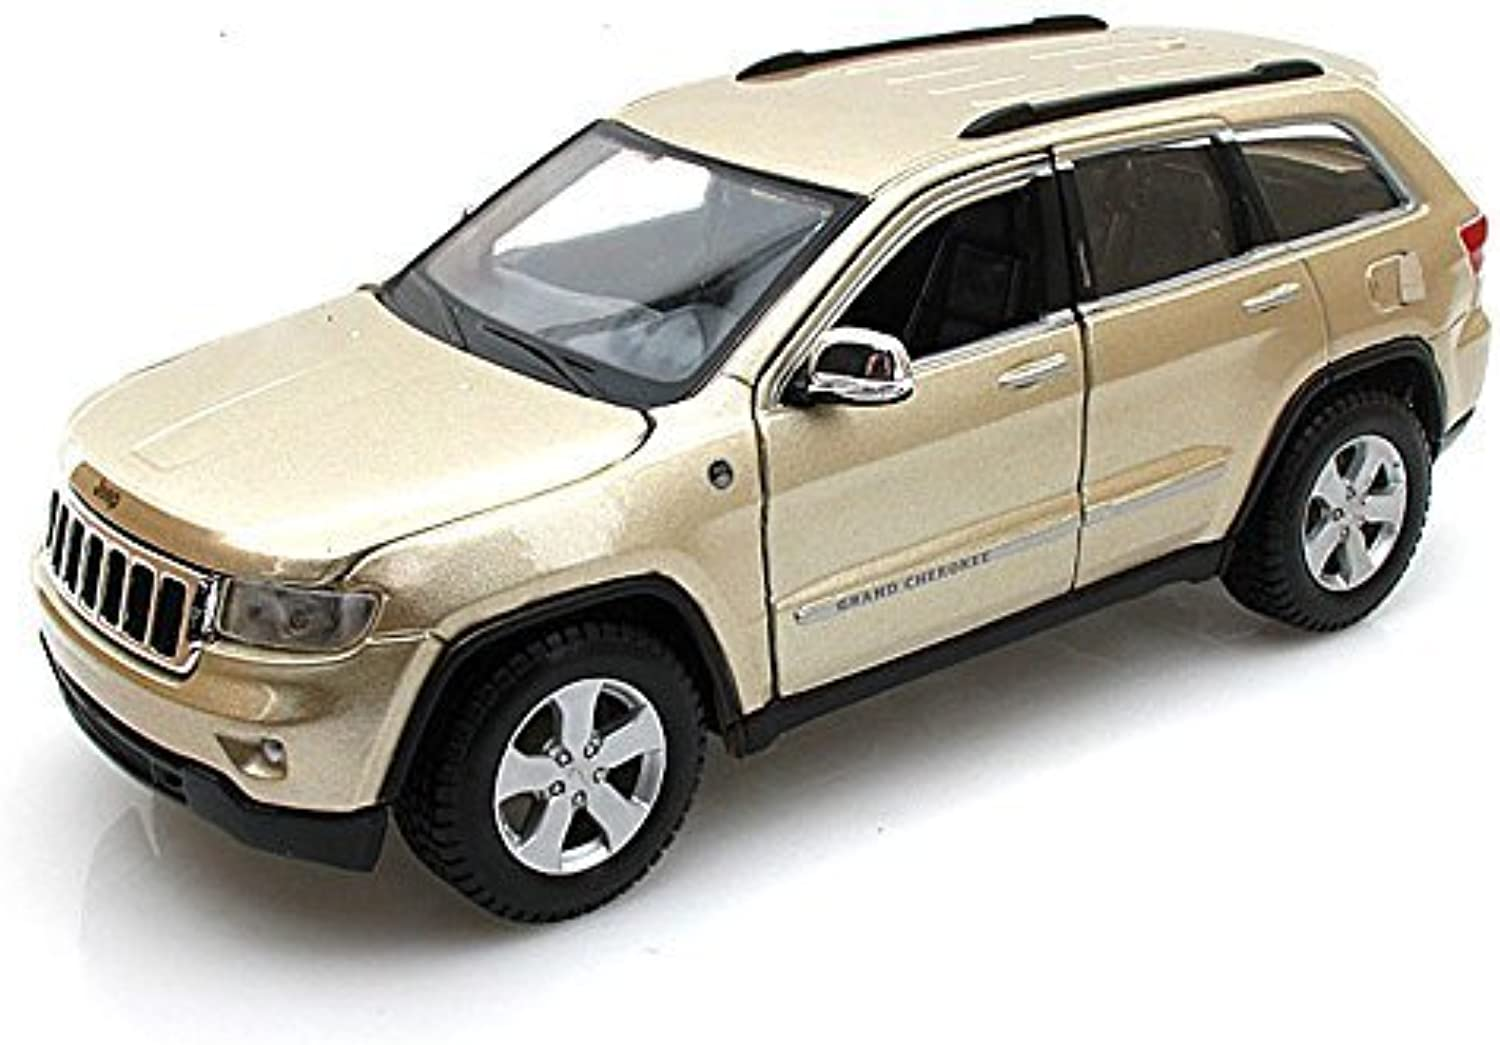 Jeep Grand Cherokee Laredo SUV, gold  Maisto 34205  1 24 Scale Diecast Model Toy Car by Maisto